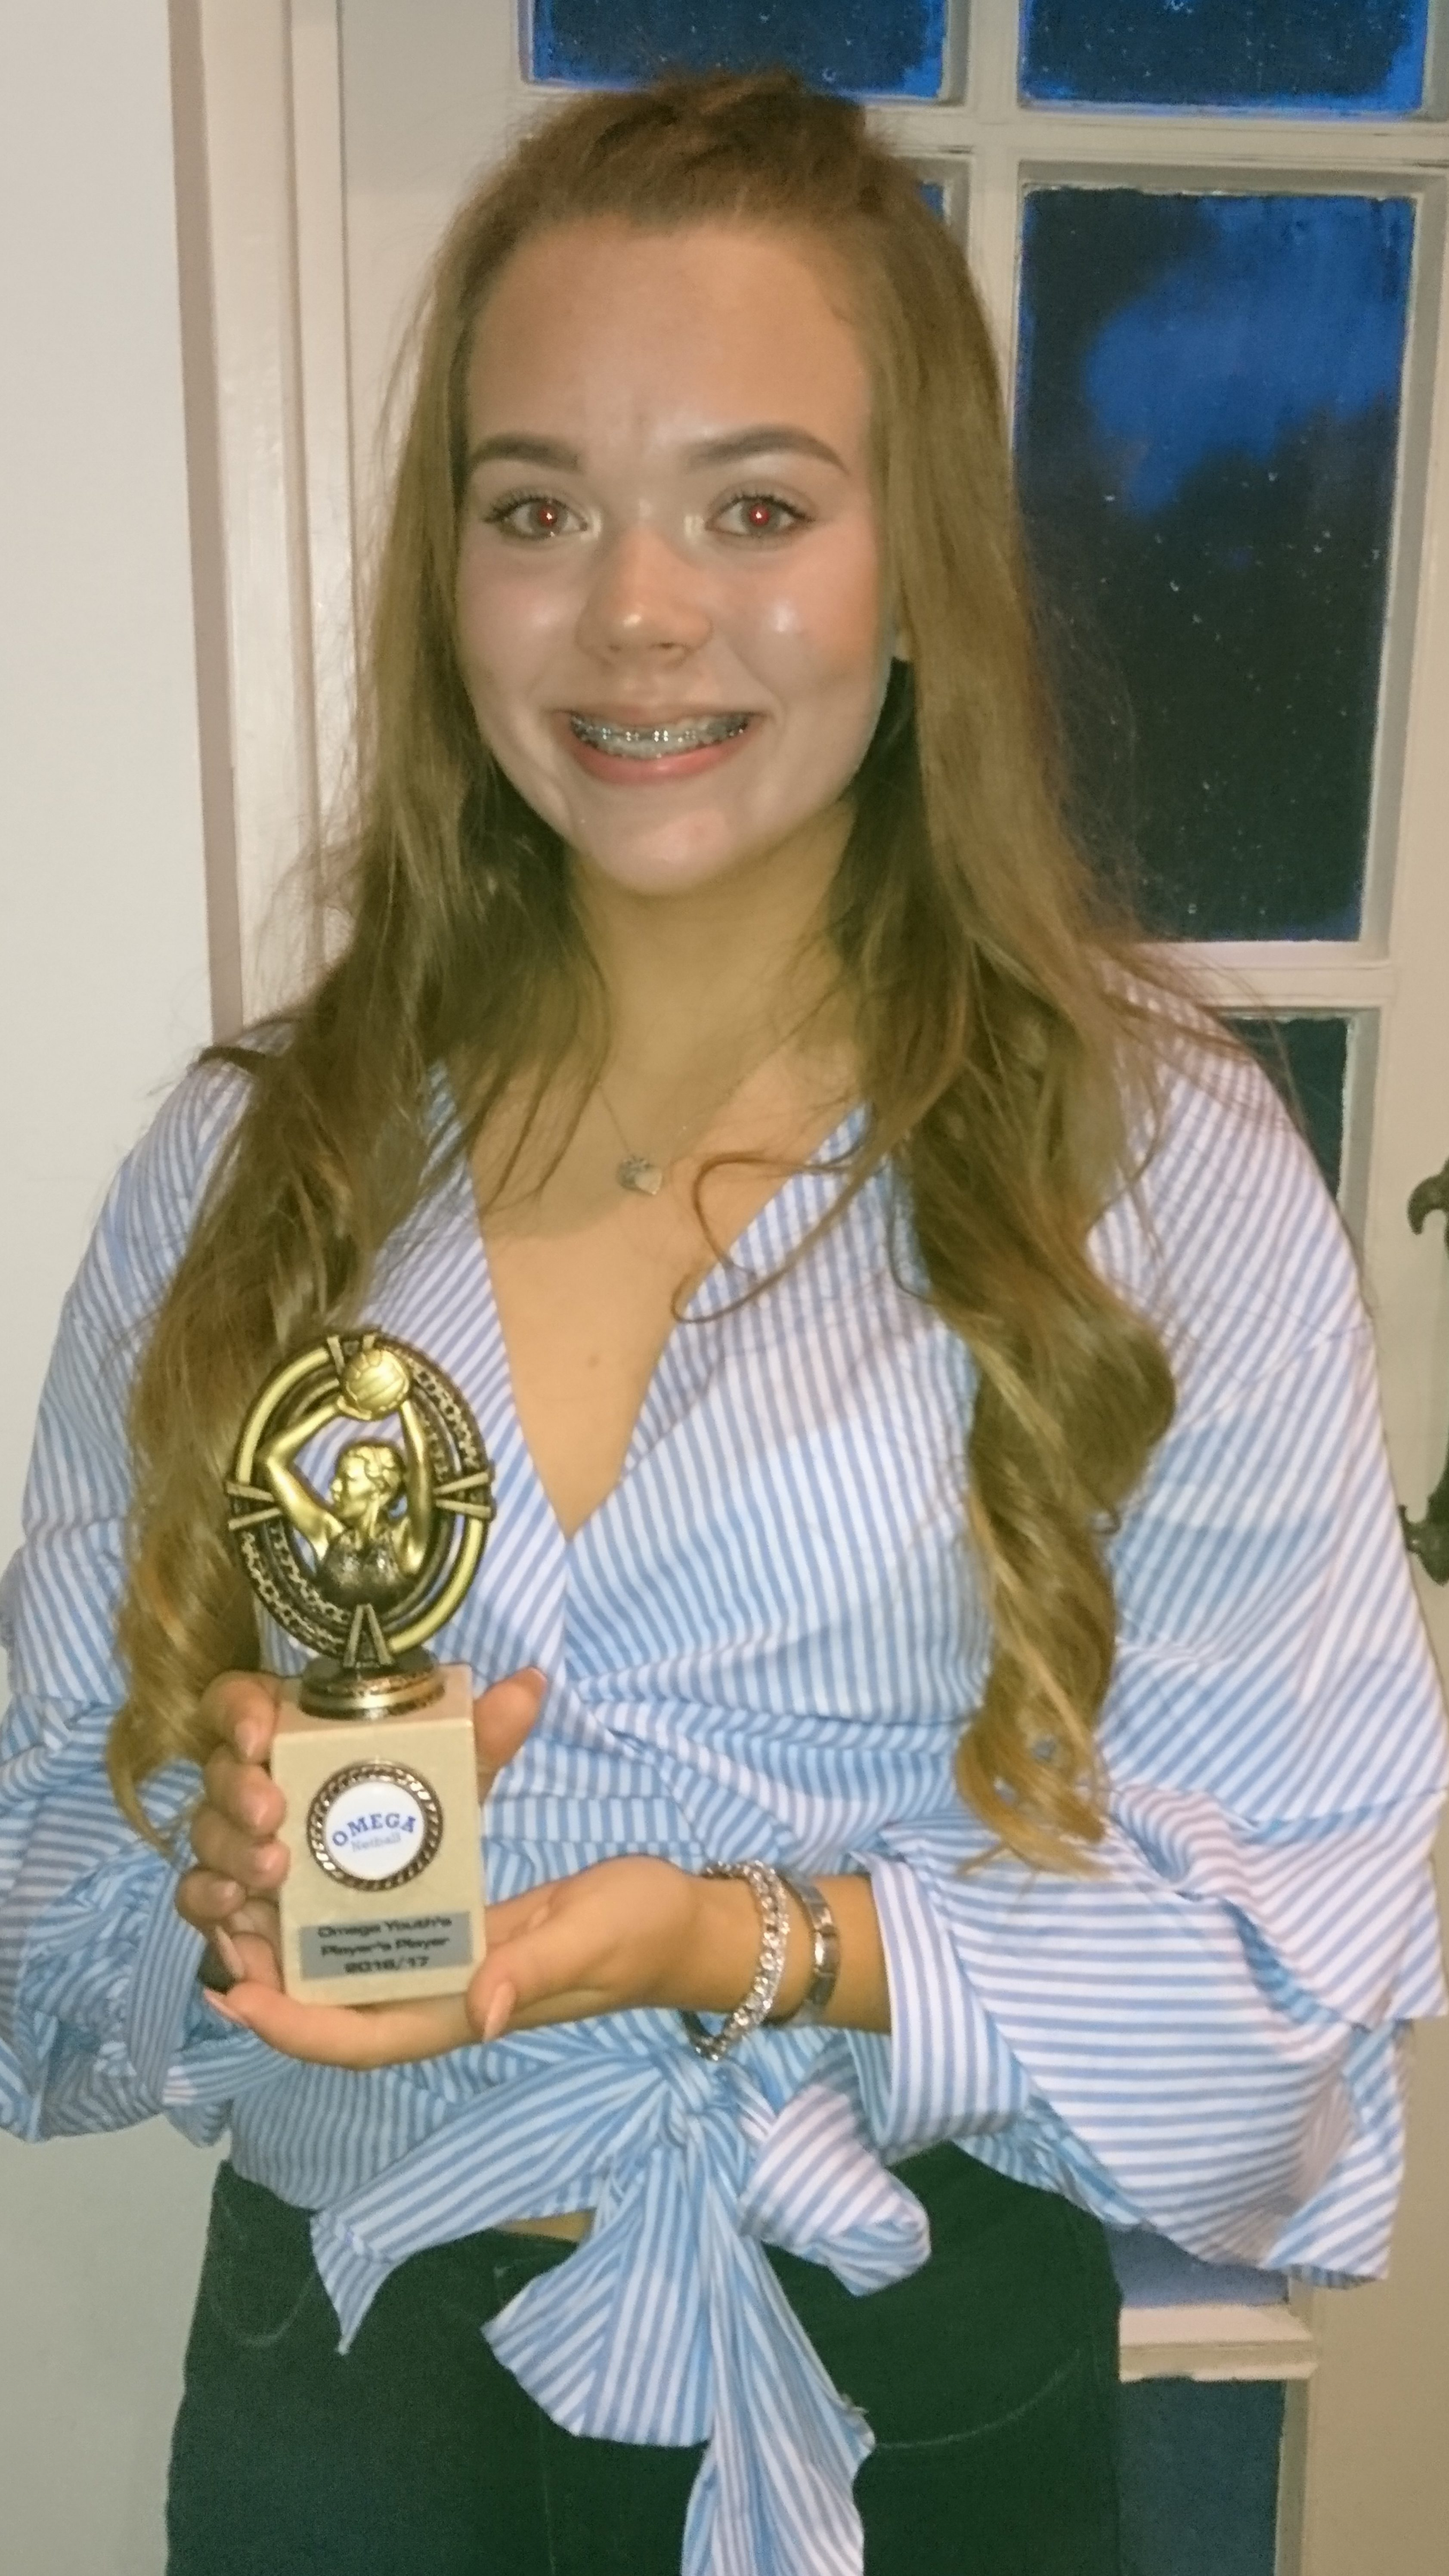 Youth Team Player's Player 2016 - 2017 (2)